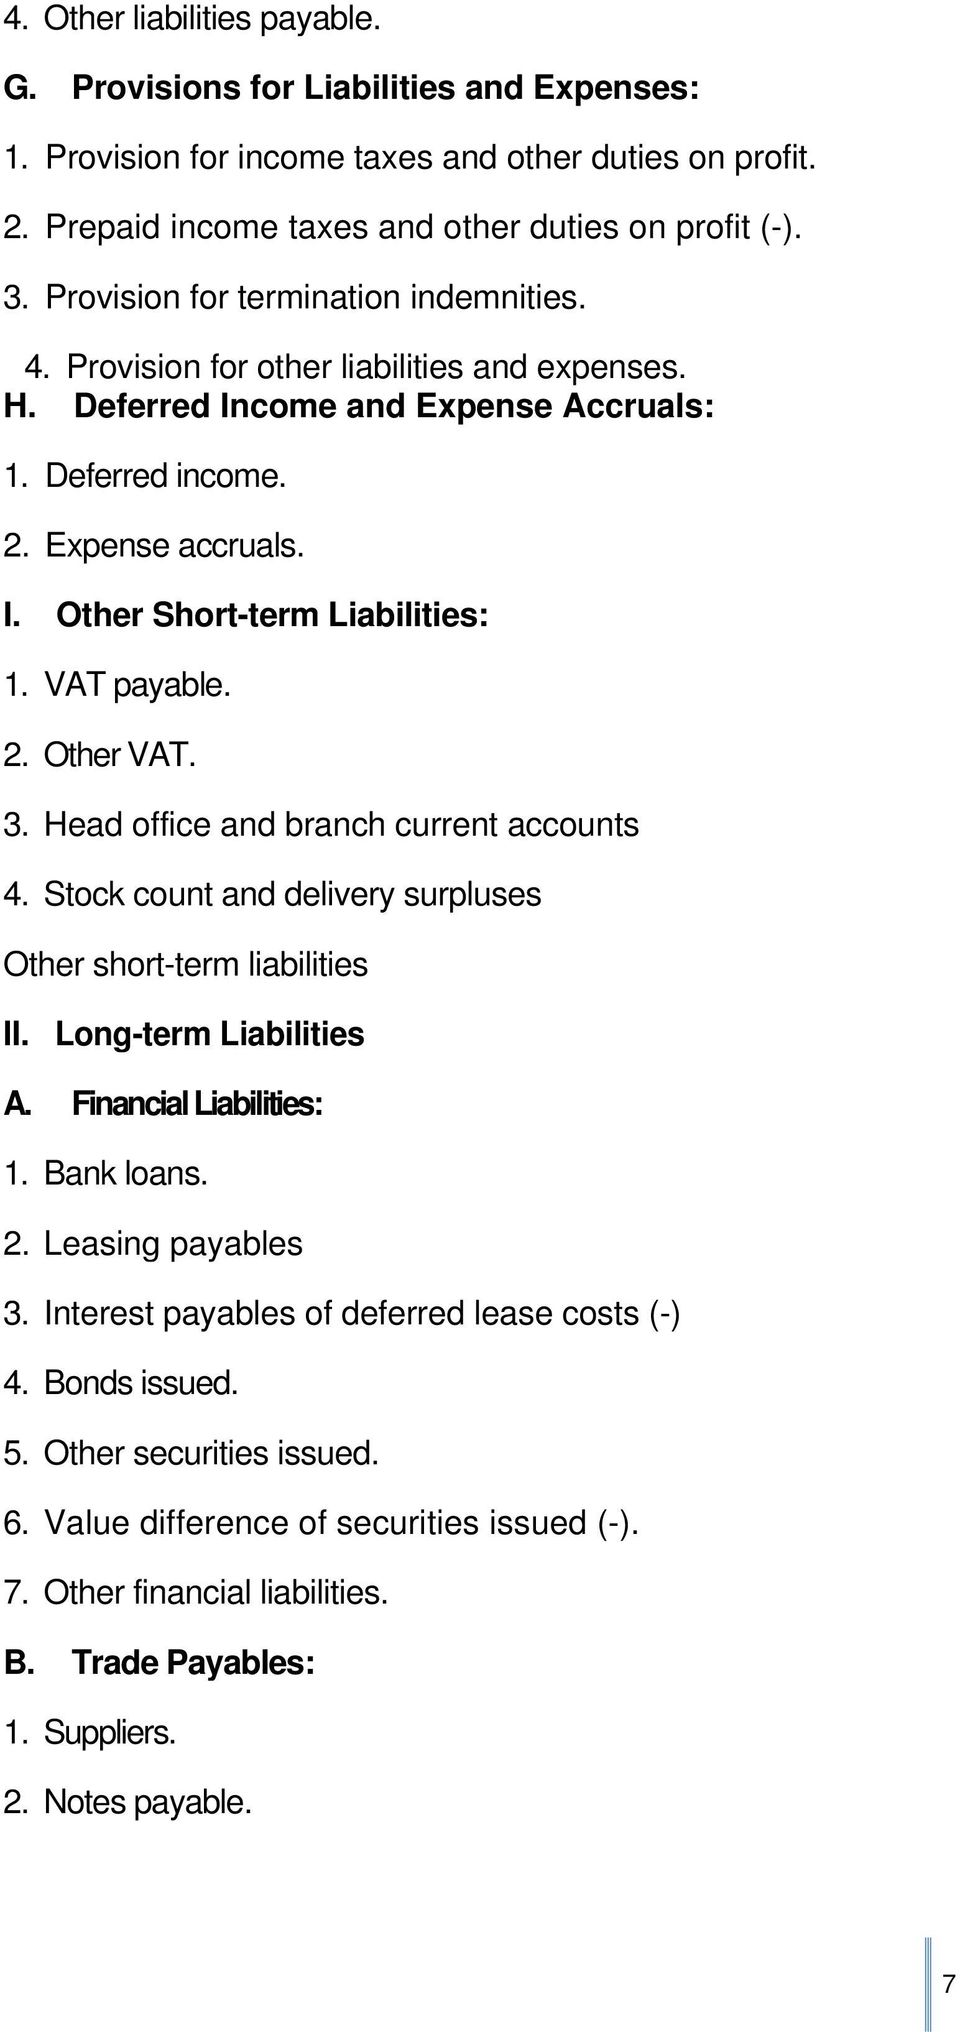 VAT payable. 2. Other VAT. 3. Head office and branch current accounts 4. Stock count and delivery surpluses Other short-term liabilities II. Long-term Liabilities A. Financial Liabilities: 1.